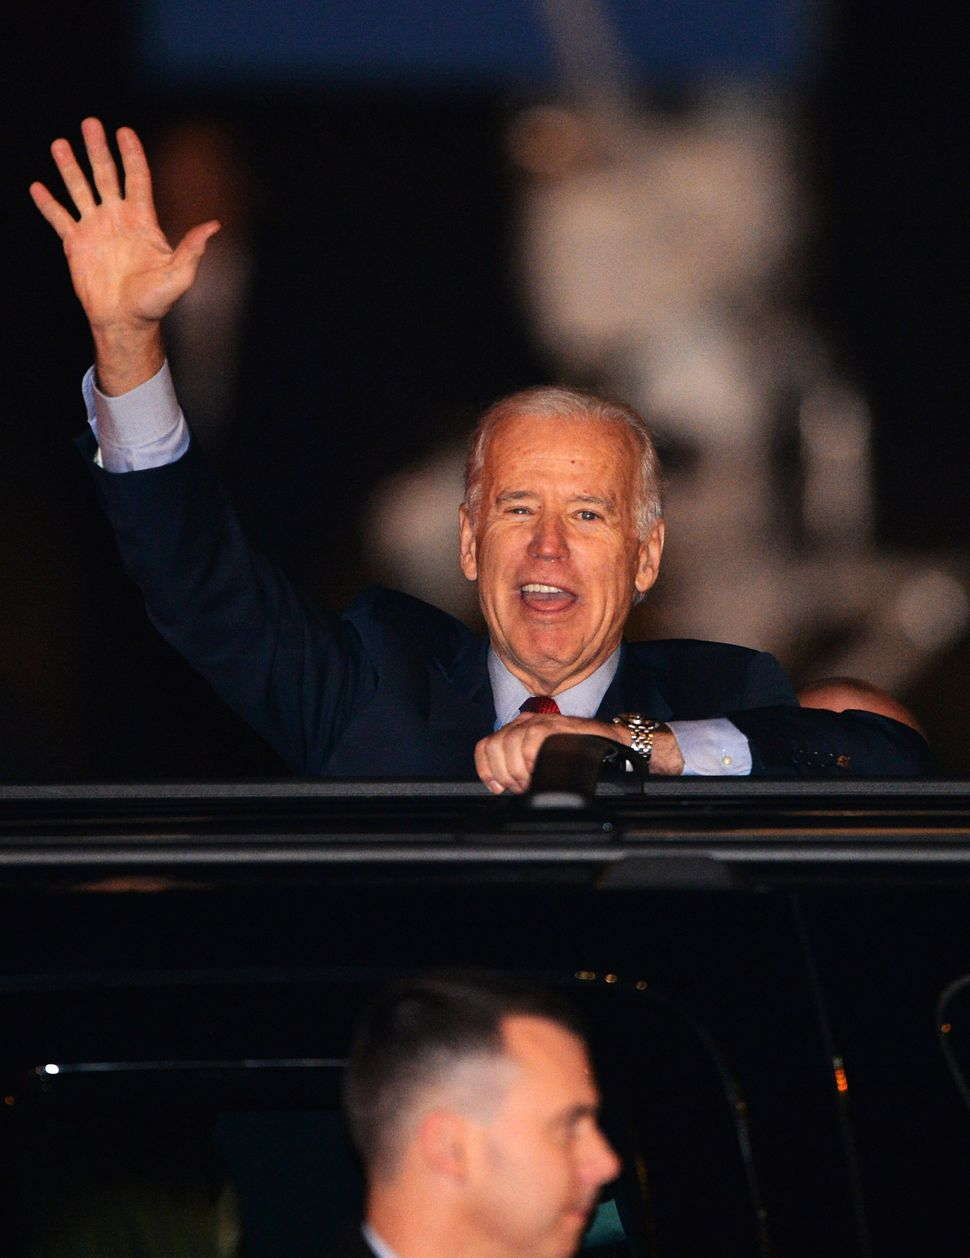 US Vice President Joe Biden waves upon his arrival at the Tokyo International Airport on December 1, 2013 on the first leg of